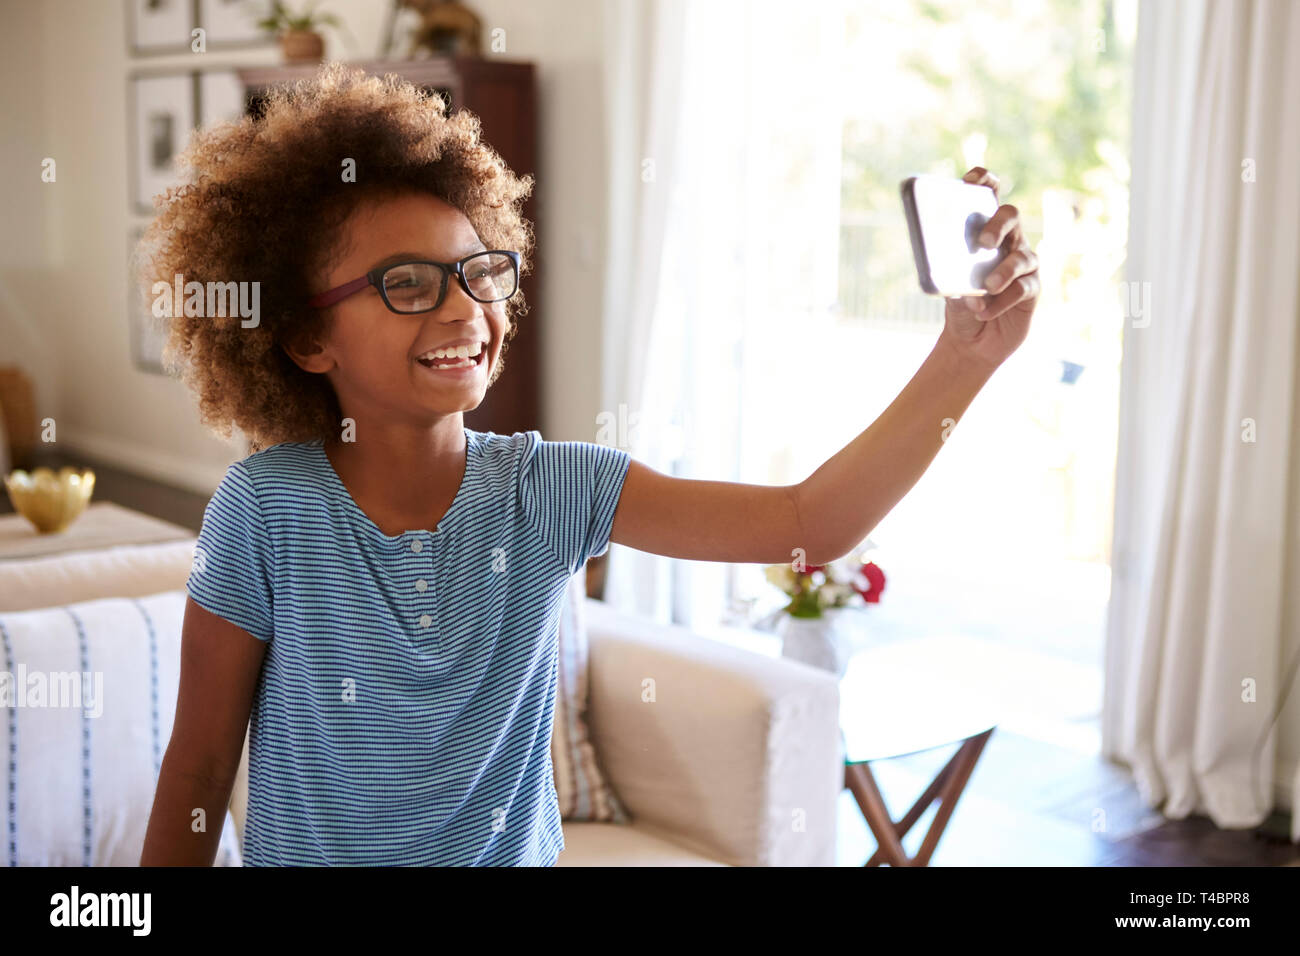 Pre-teen girl taking a selfie photo standing in the living room laughing, close up, focus on foreground - Stock Image